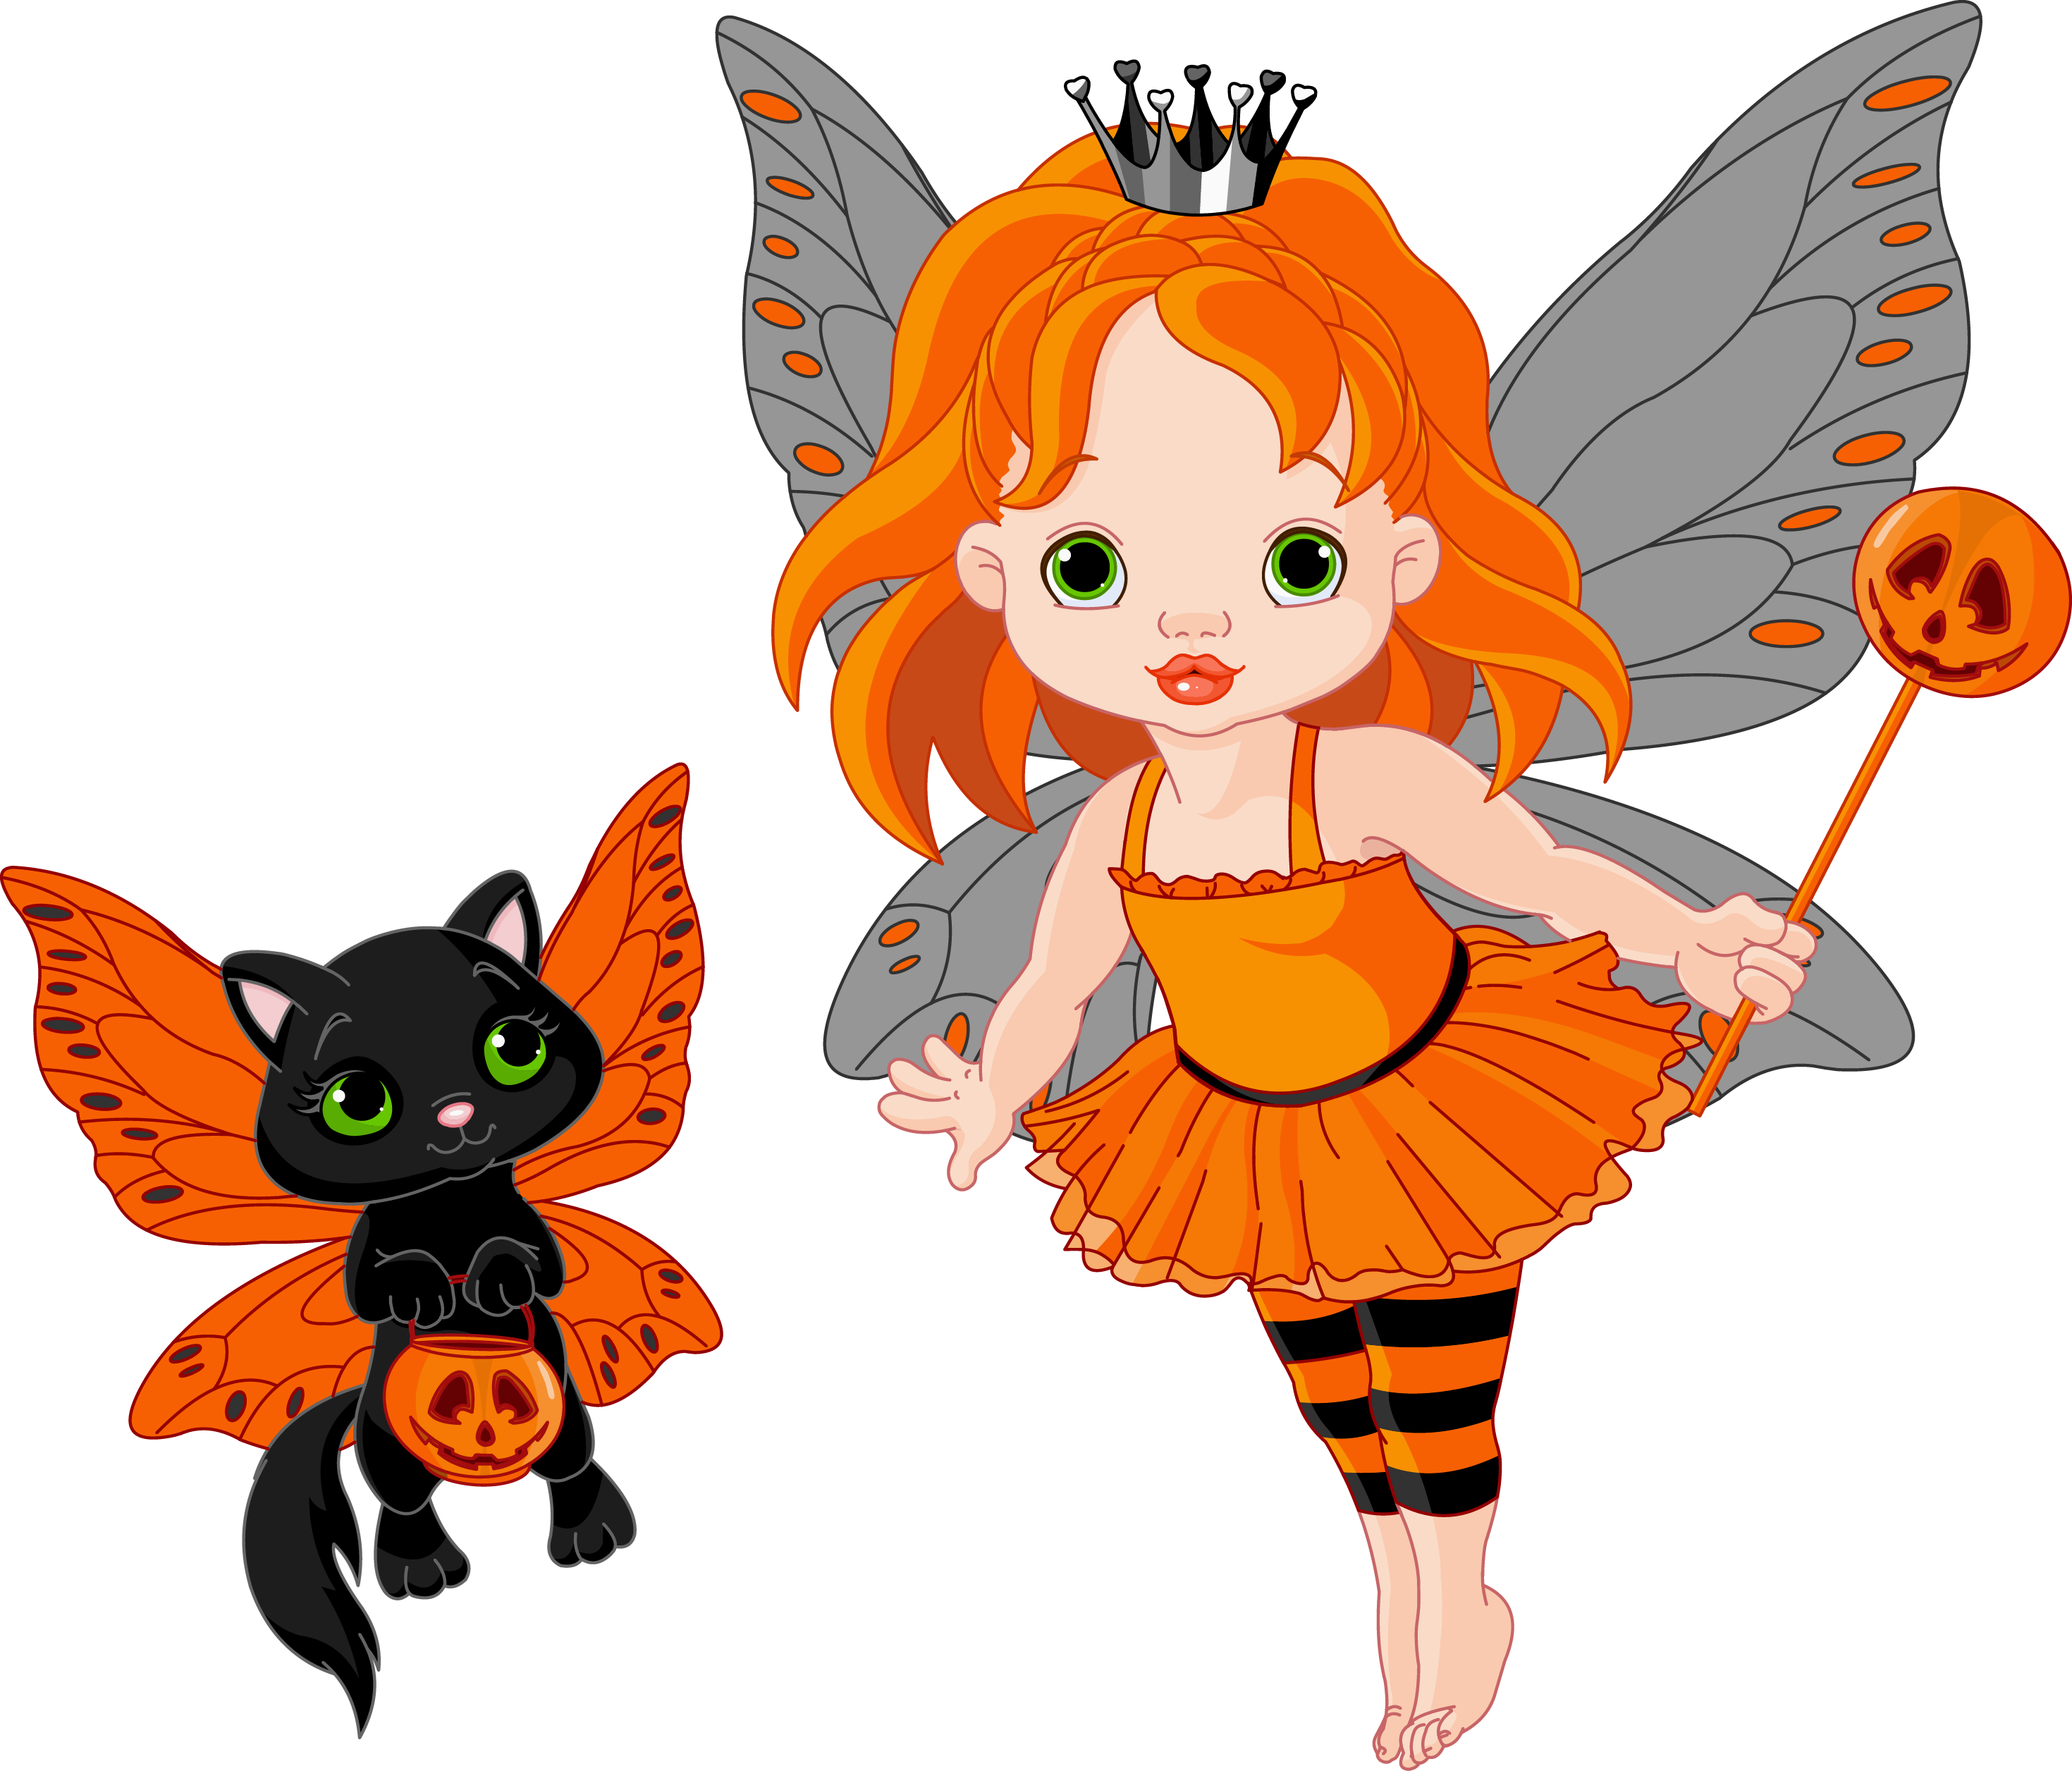 Cat birthday clipart graphic black and white download Transparent Halloween Fairy and Cat | Gallery Yopriceville - High ... graphic black and white download